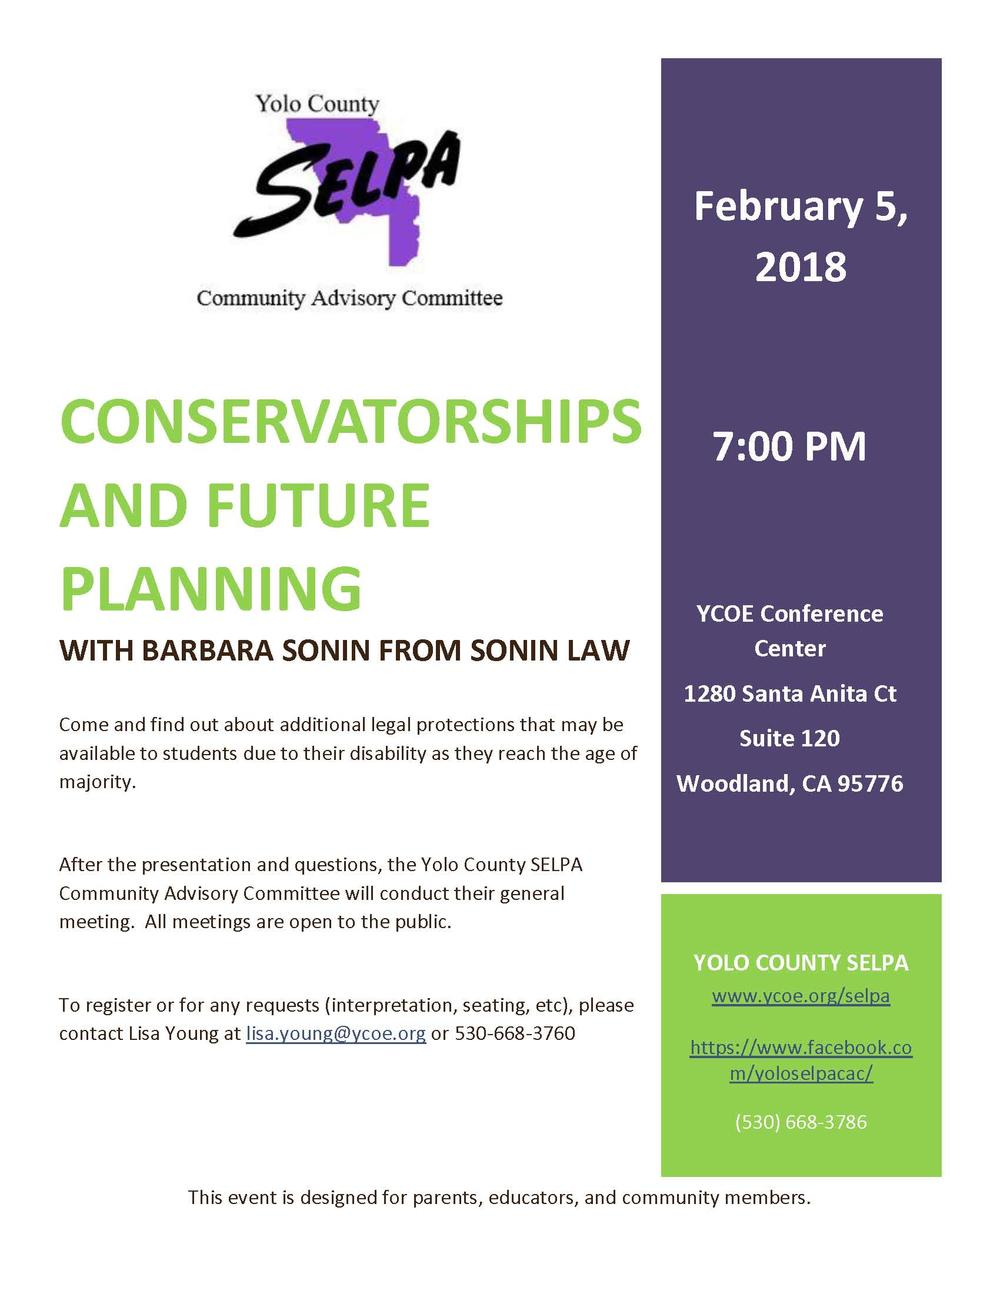 Conservatorships and Future Planning